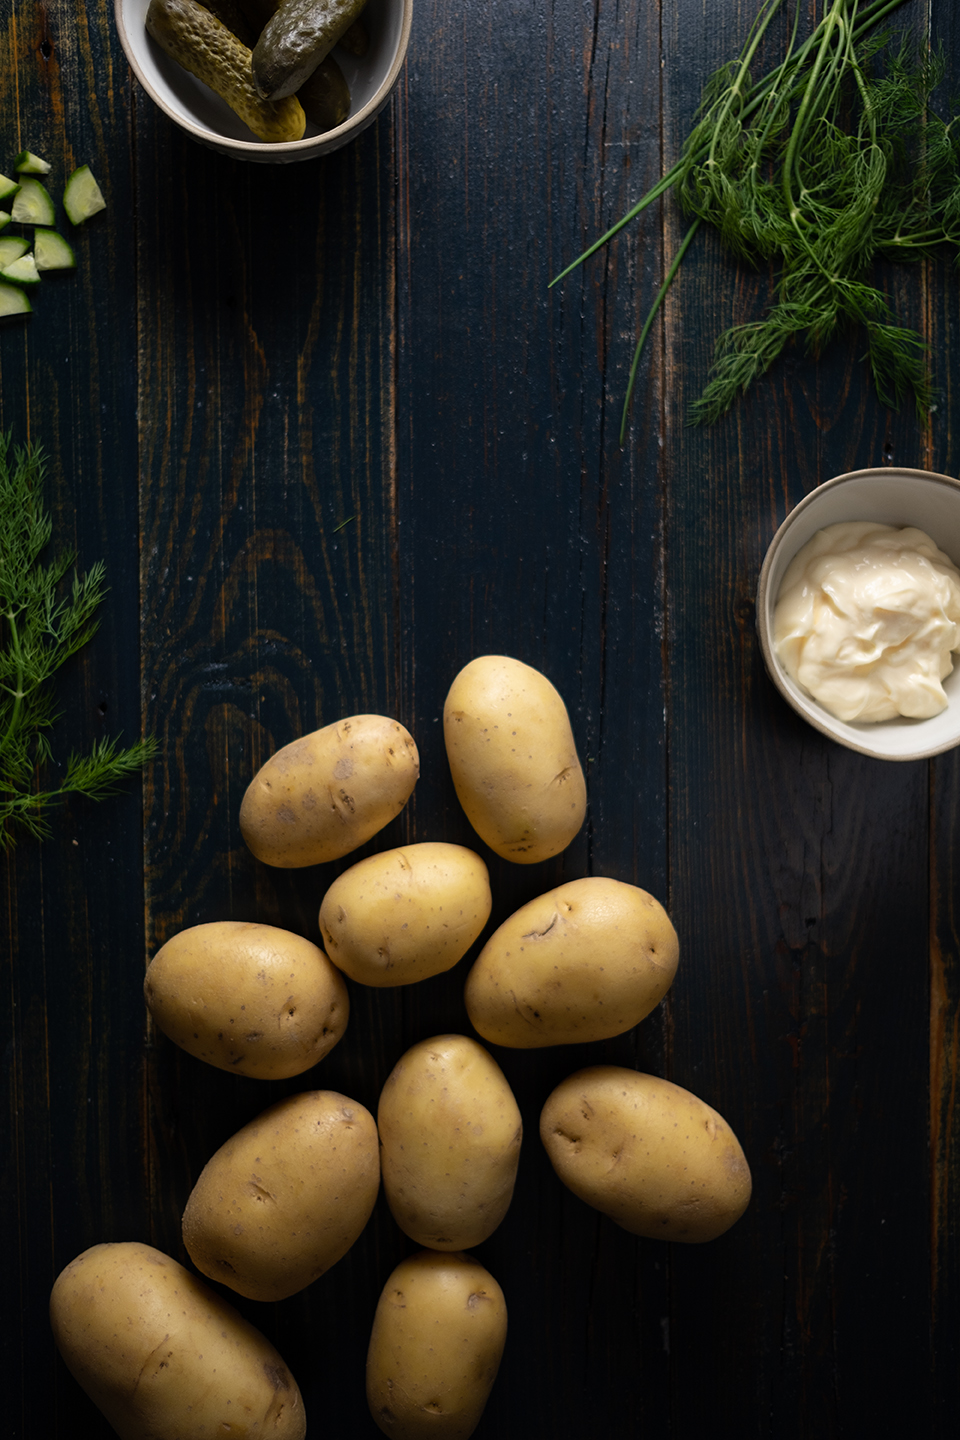 yukon gold potatoes on wooden table with potato salad ingredients